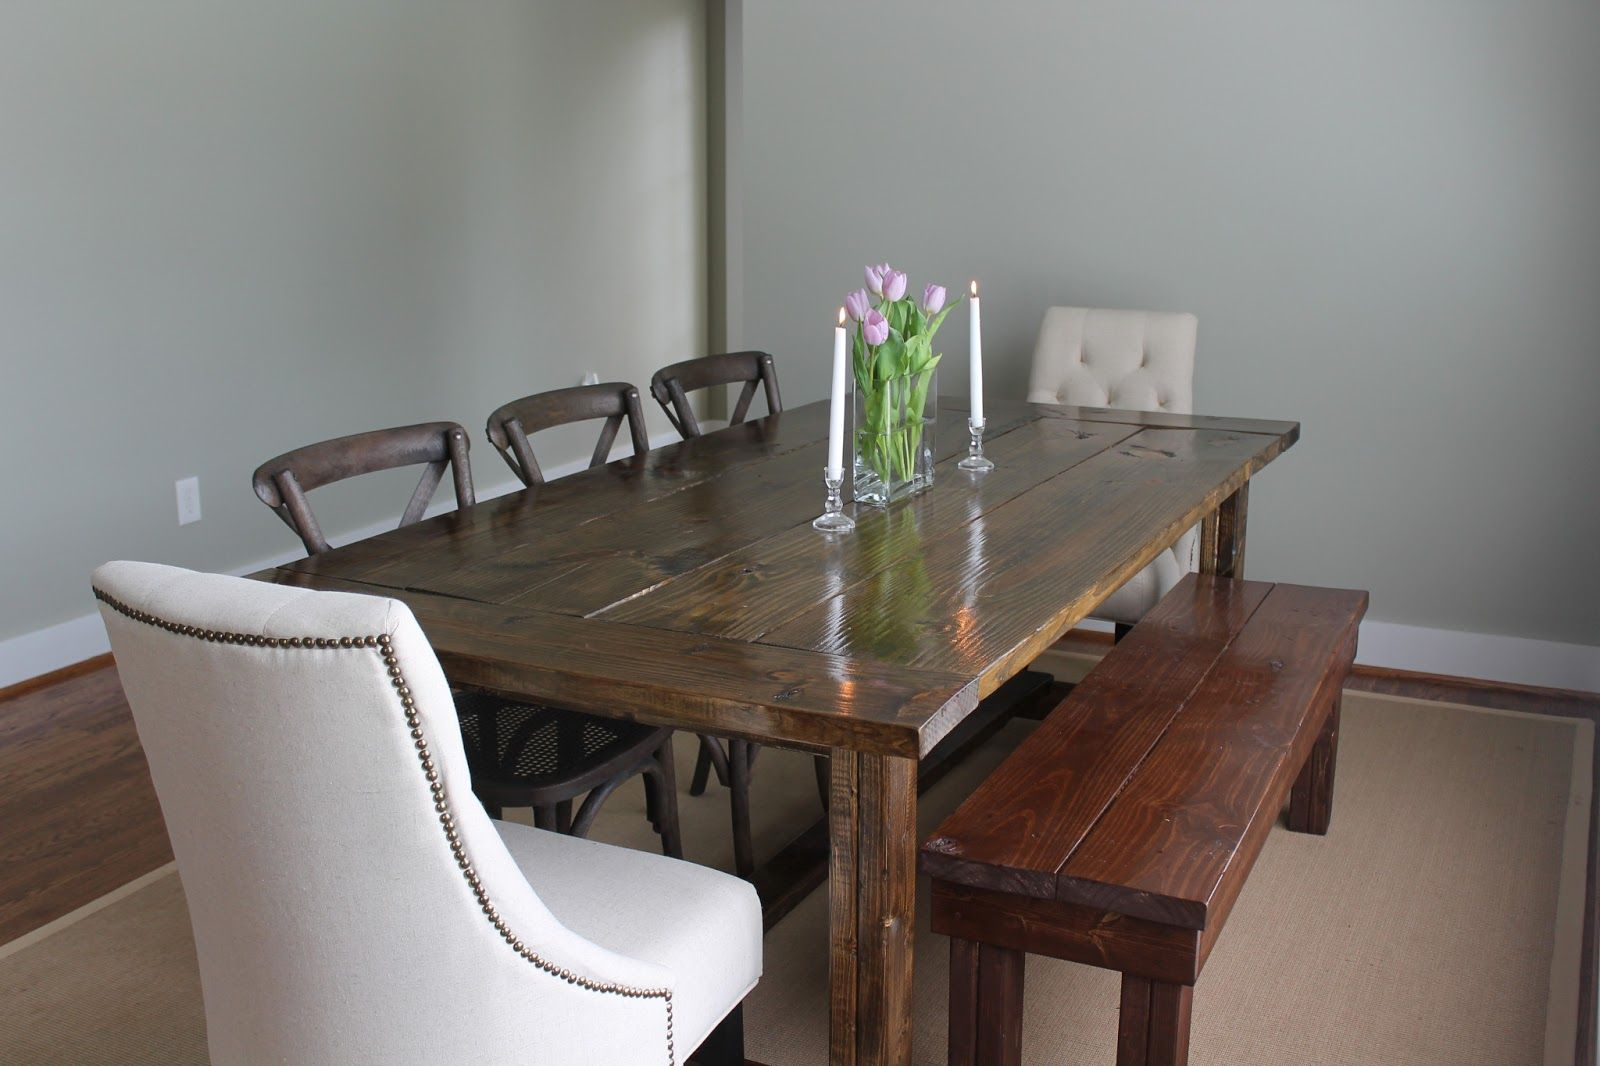 furniturecountrystylelargefarmhousediningtablewith